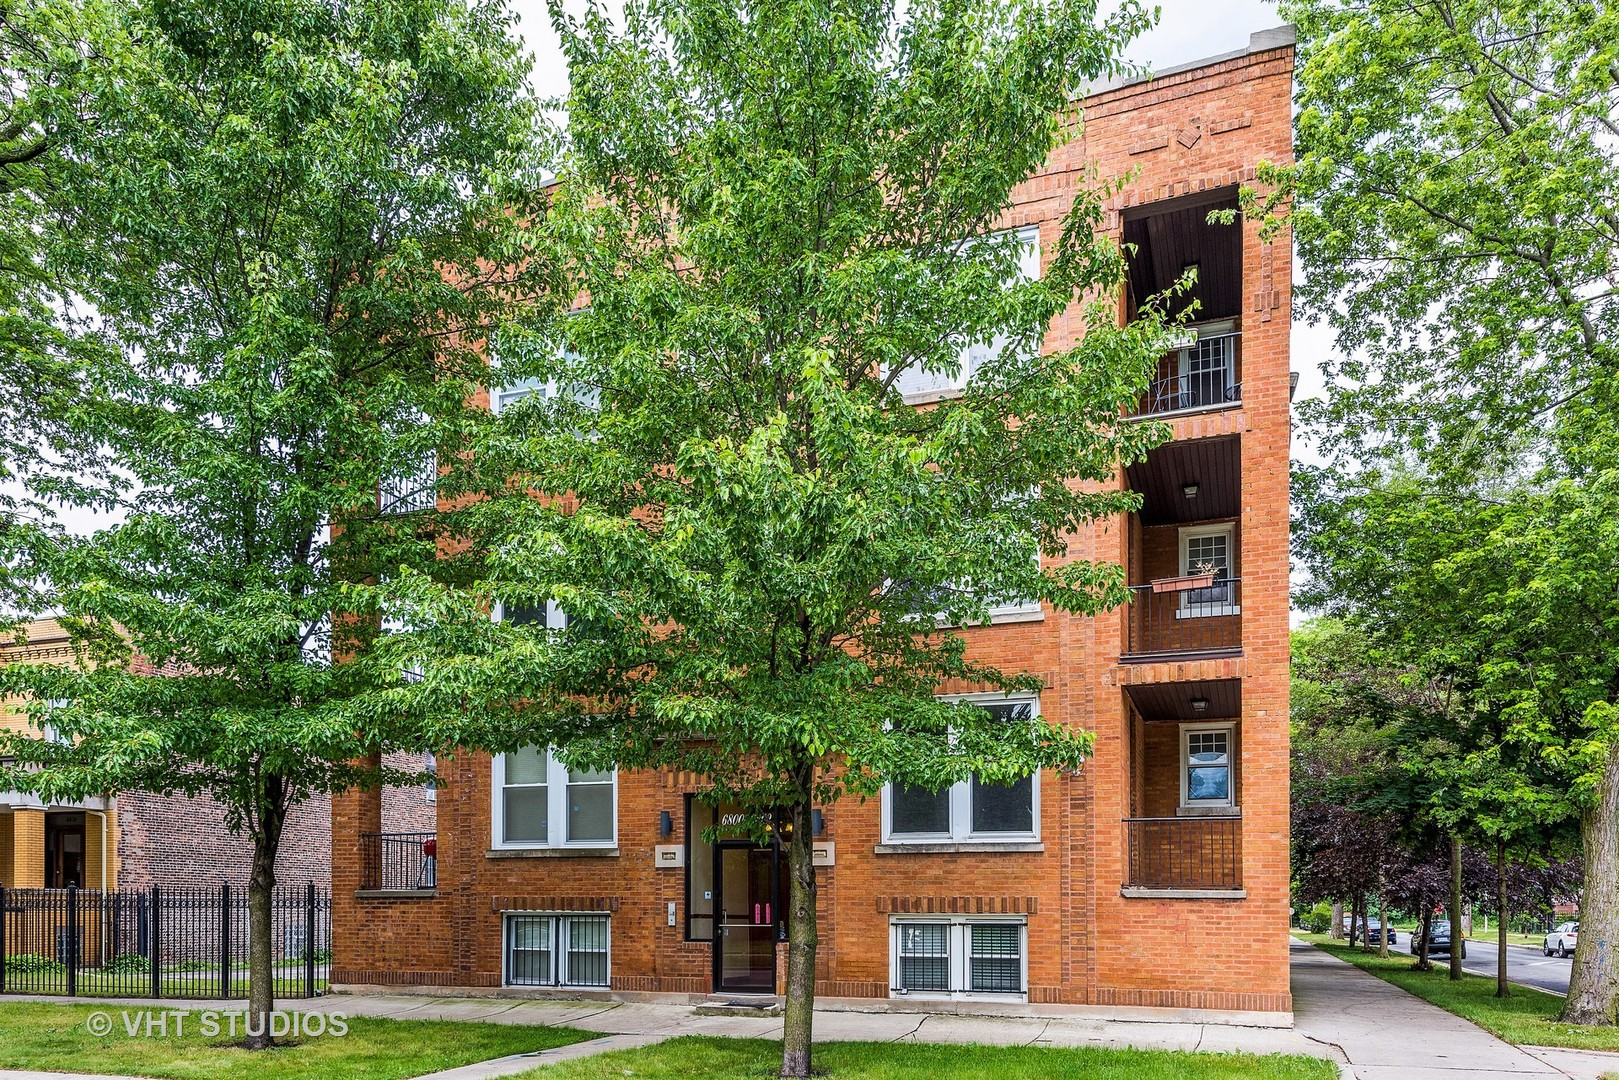 6800 S Dante AVE Unit #U1, Chicago, IL, 60637, condos and townhomes for sale